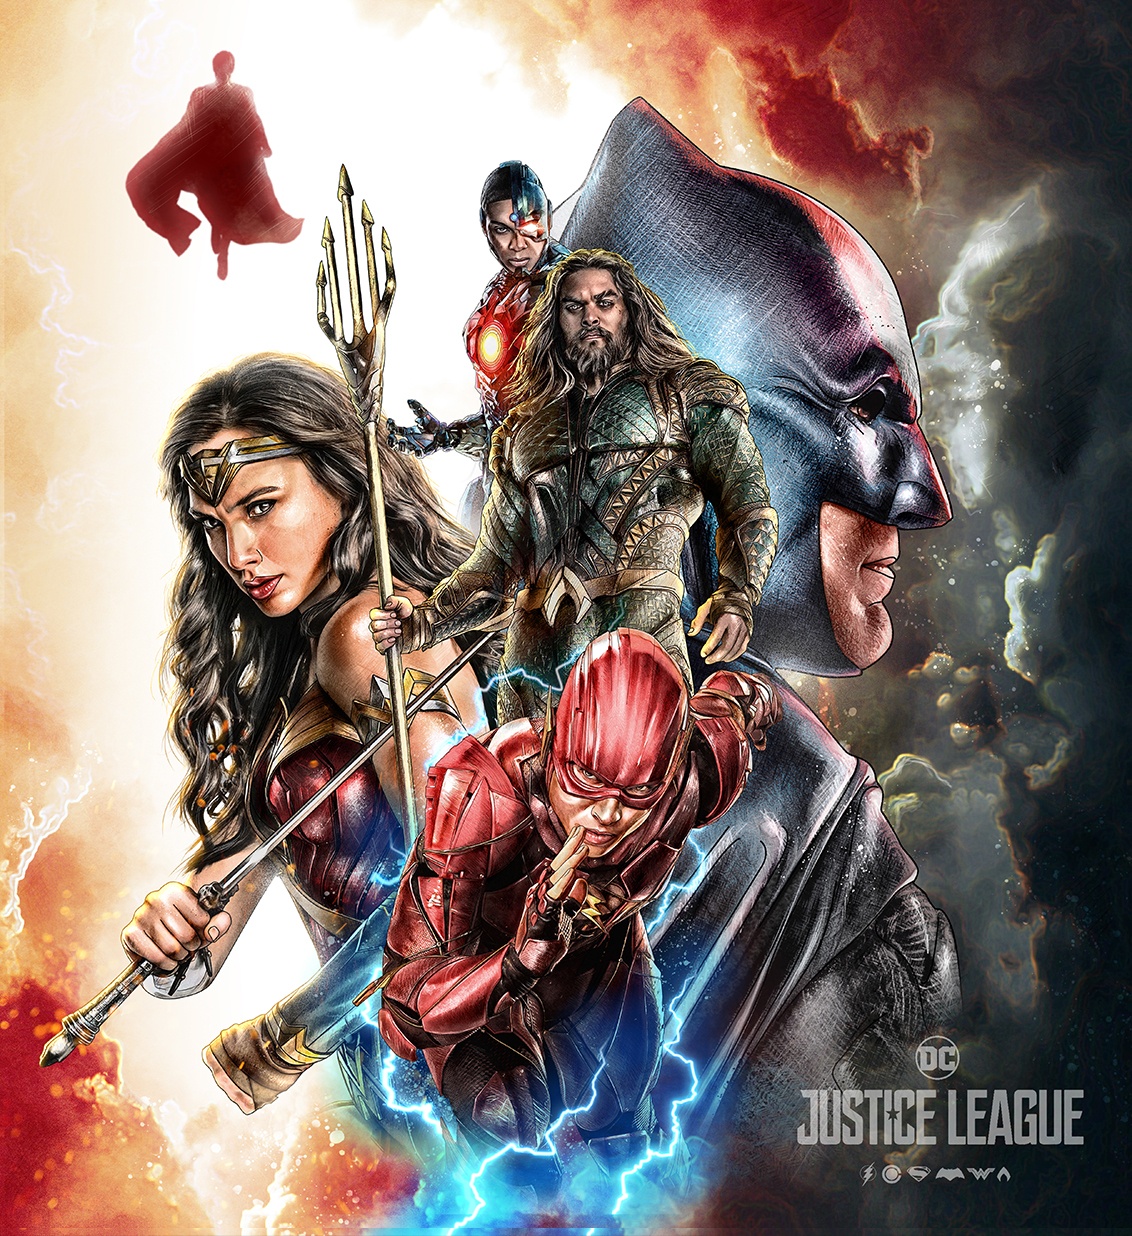 Warner Bros Dc Comics Justice League 2017 On Behance